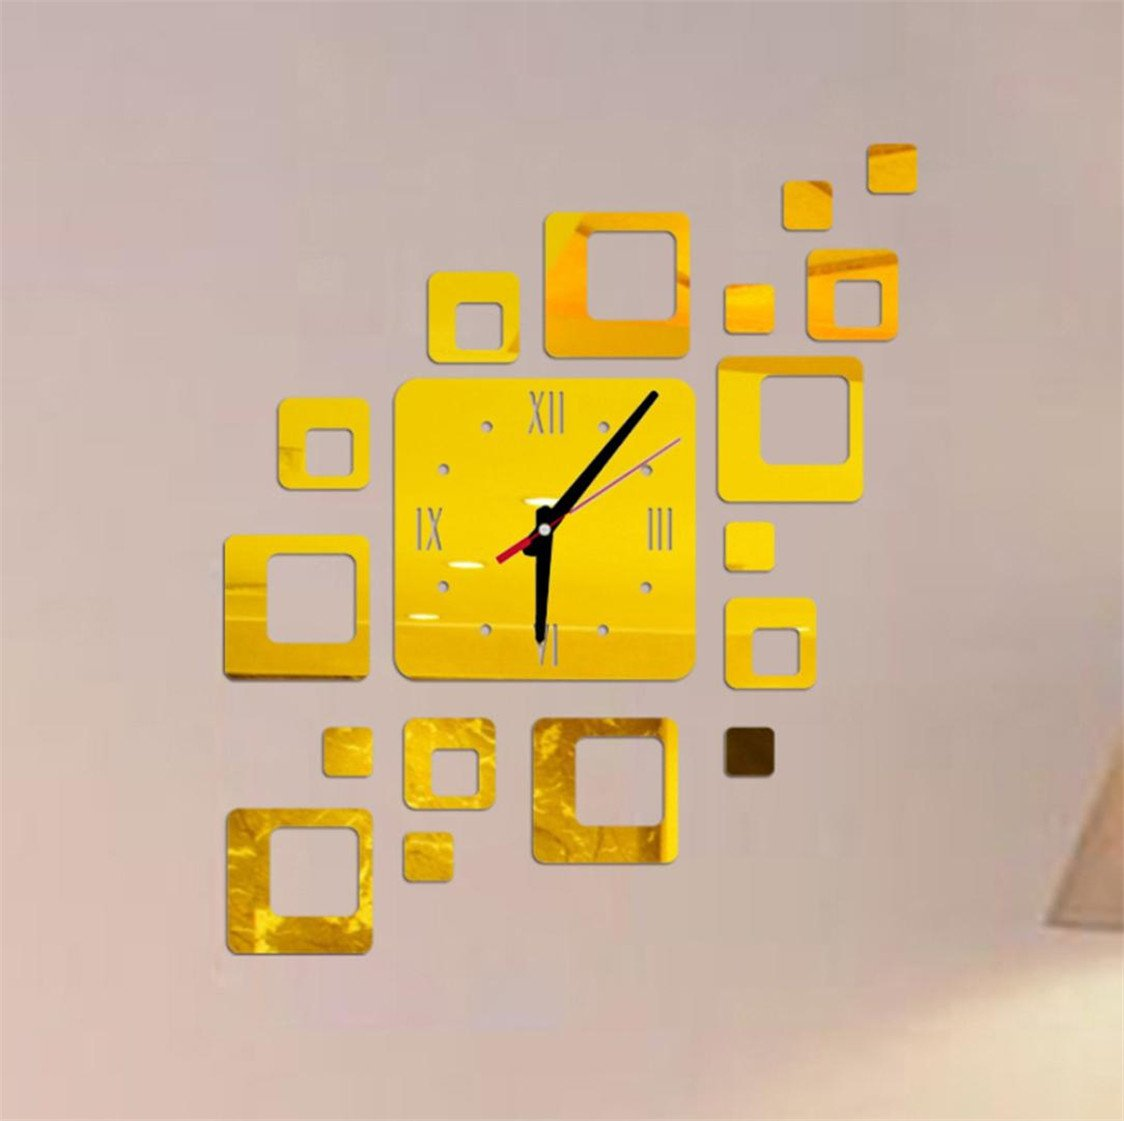 Amazon.com: TIFENNY Acrylic Mirror DIY Wall Sticker Clock, Living Room Bedroom Modern Watch Decor Wall-mounted Vinyl Wall Sticker (Gold): Home & Kitchen